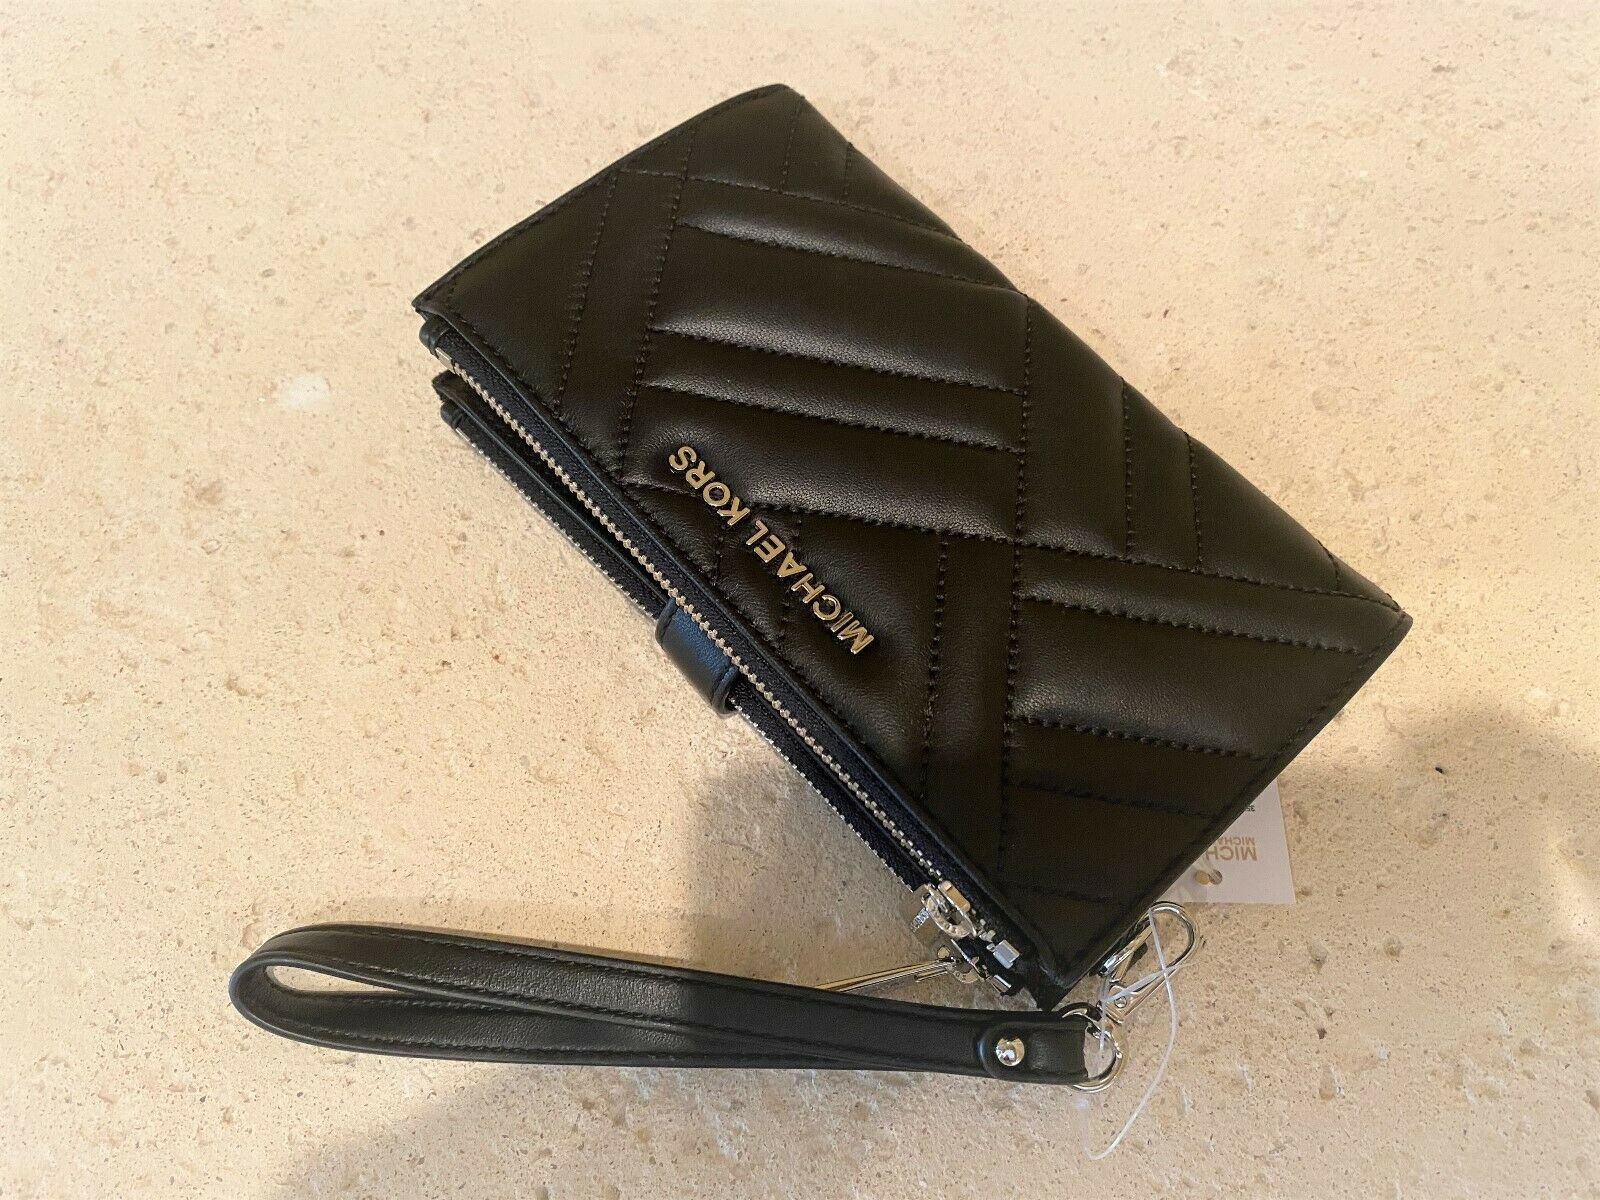 Primary image for Michael Kors Peyton Double Zip Quilted Leather Phone Wristlet Black/Silver